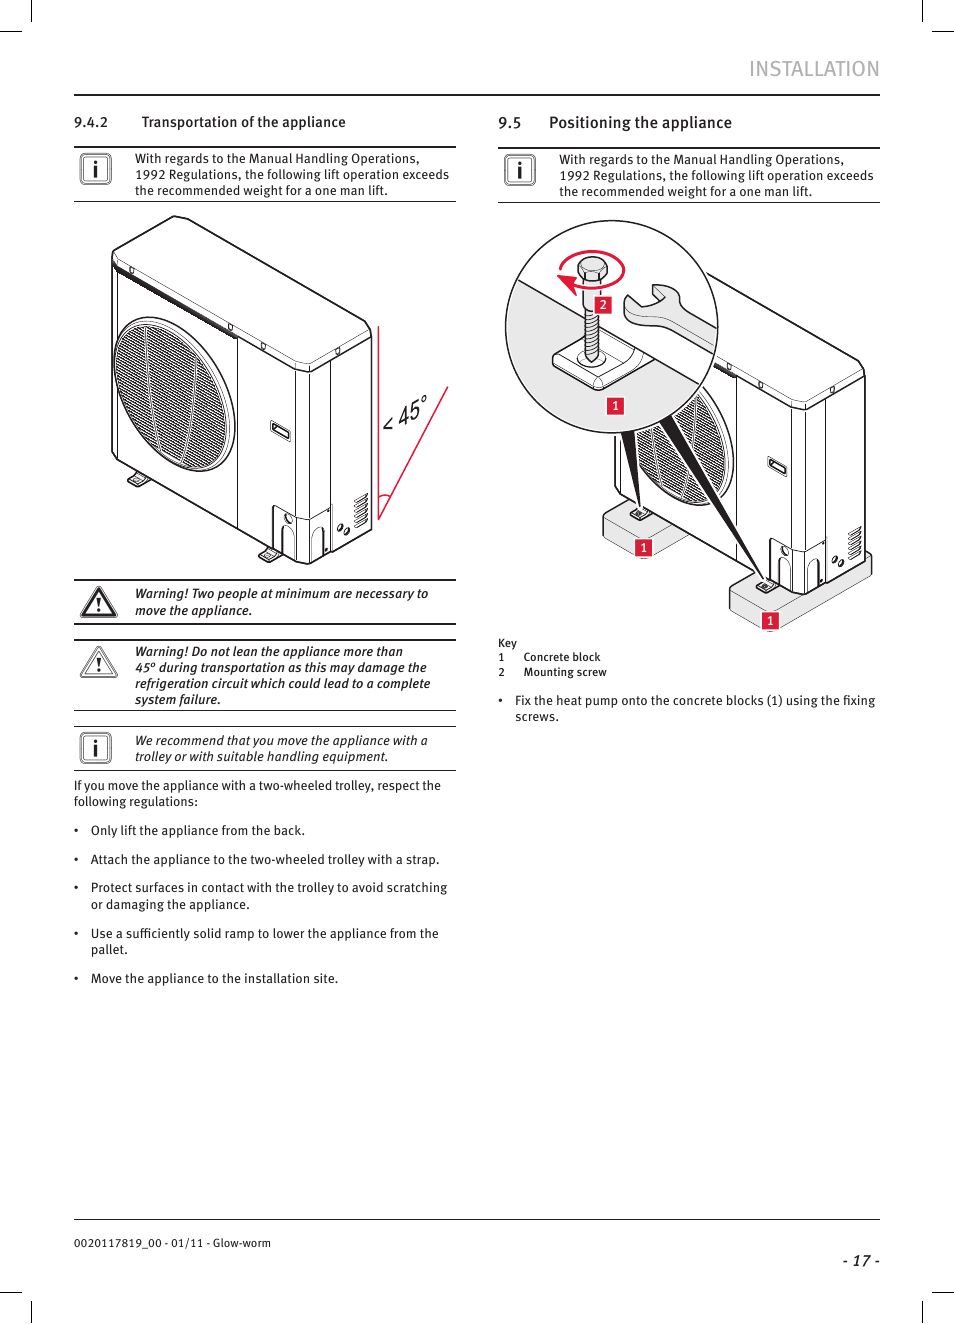 Installation | Glow-worm Clearly Heat Pumps Envirosorb2 User Manual ...